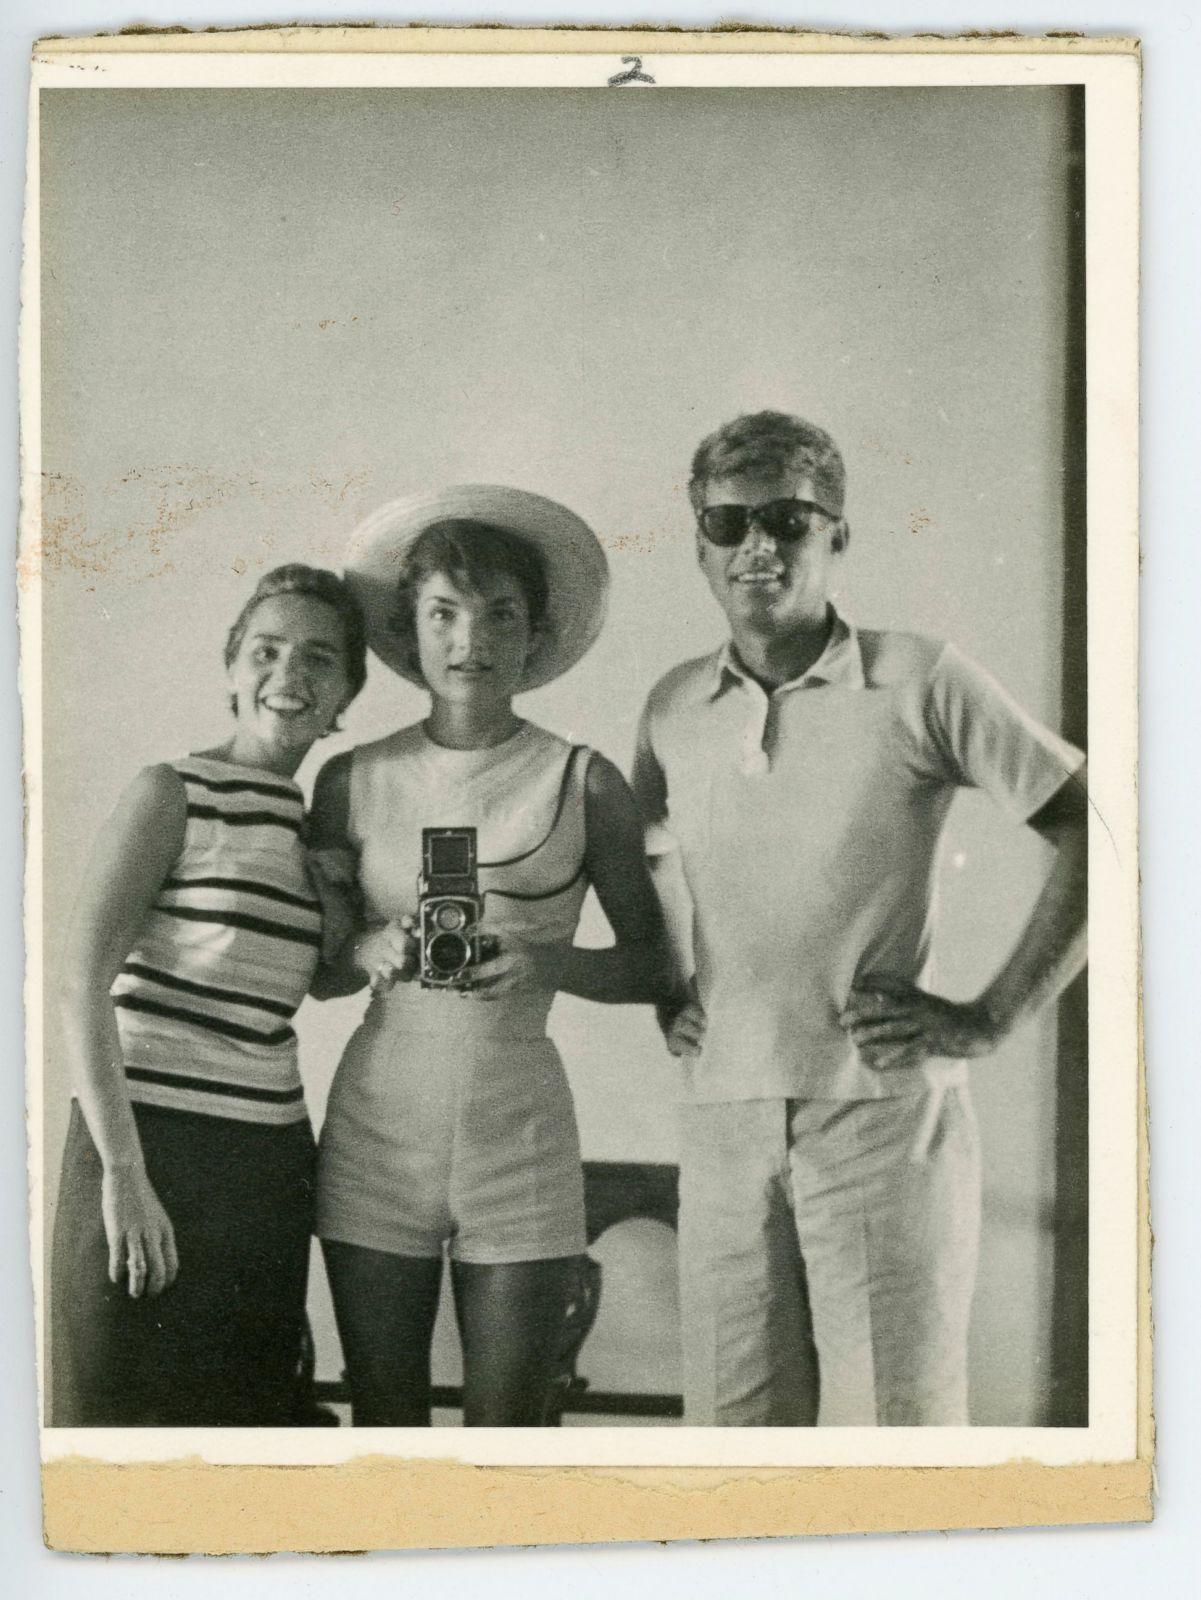 Before the Smartphone, Here Are 11 Fabulous Vintage Selfies of Famous People